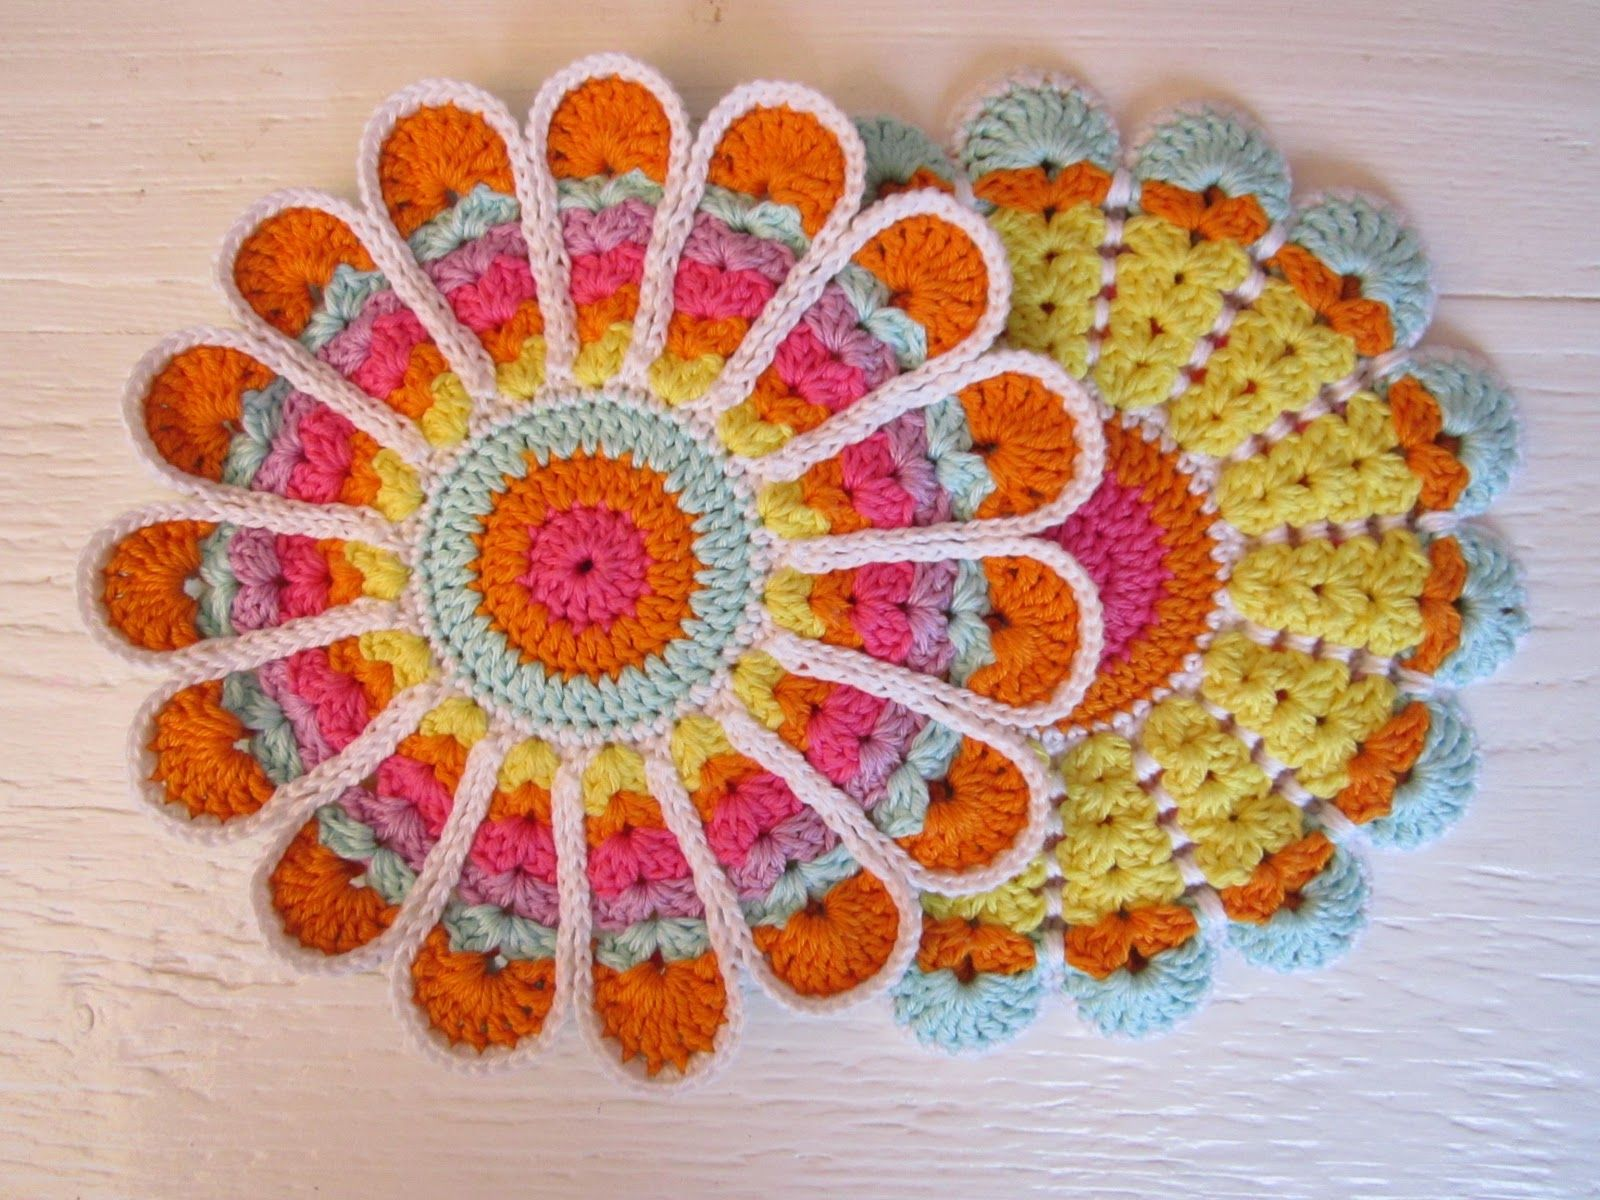 Crochet Flowers Free Patterns The Best Collection | Flores en ...